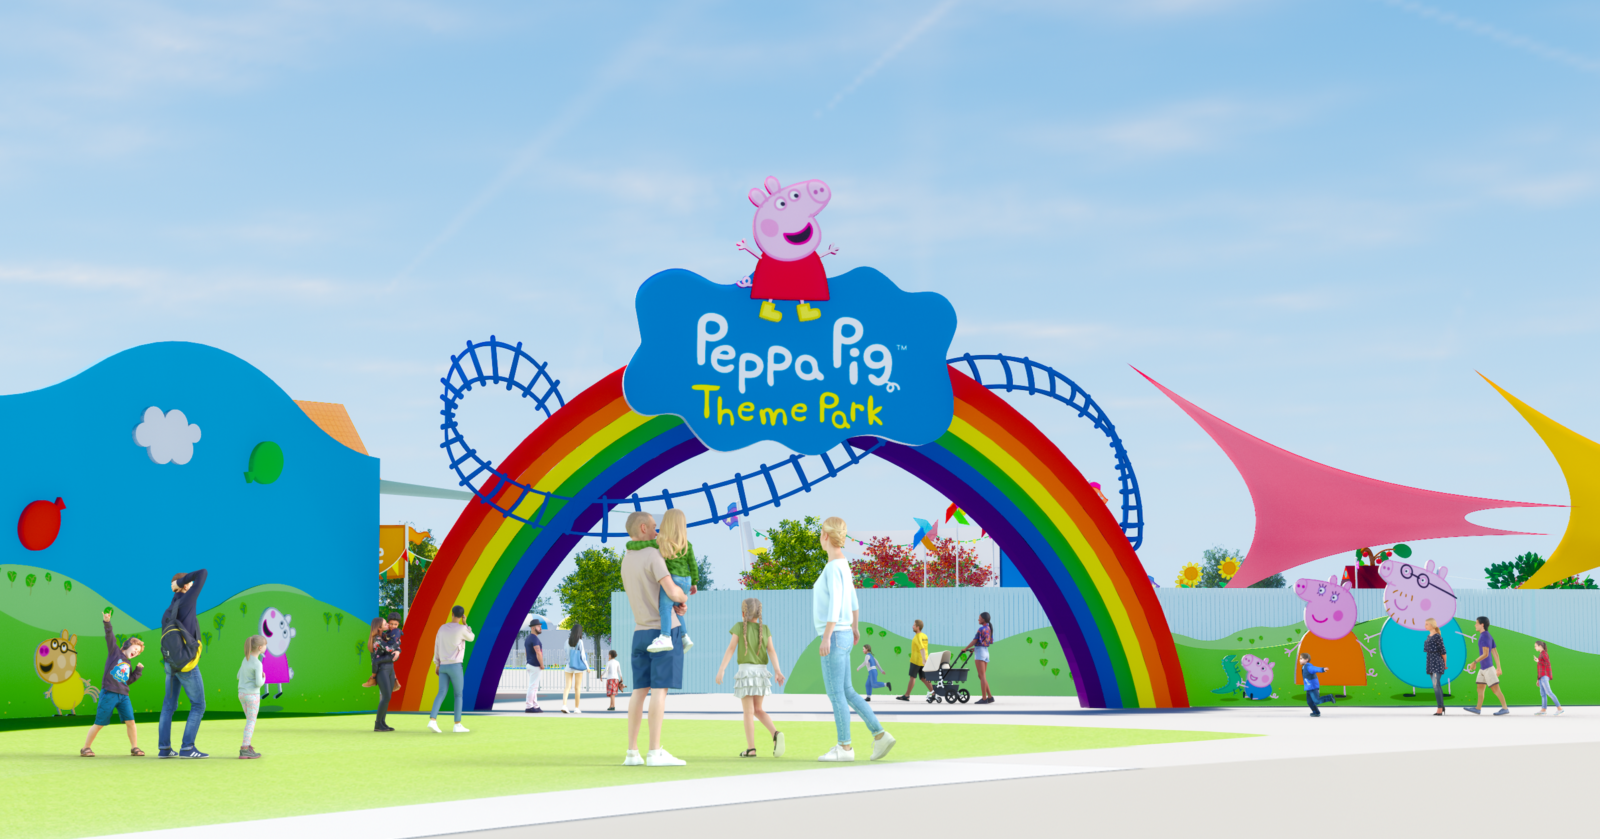 RENDERING_Front Gate_Peppa Pig Theme Park at LEGOLAND Florida Resort